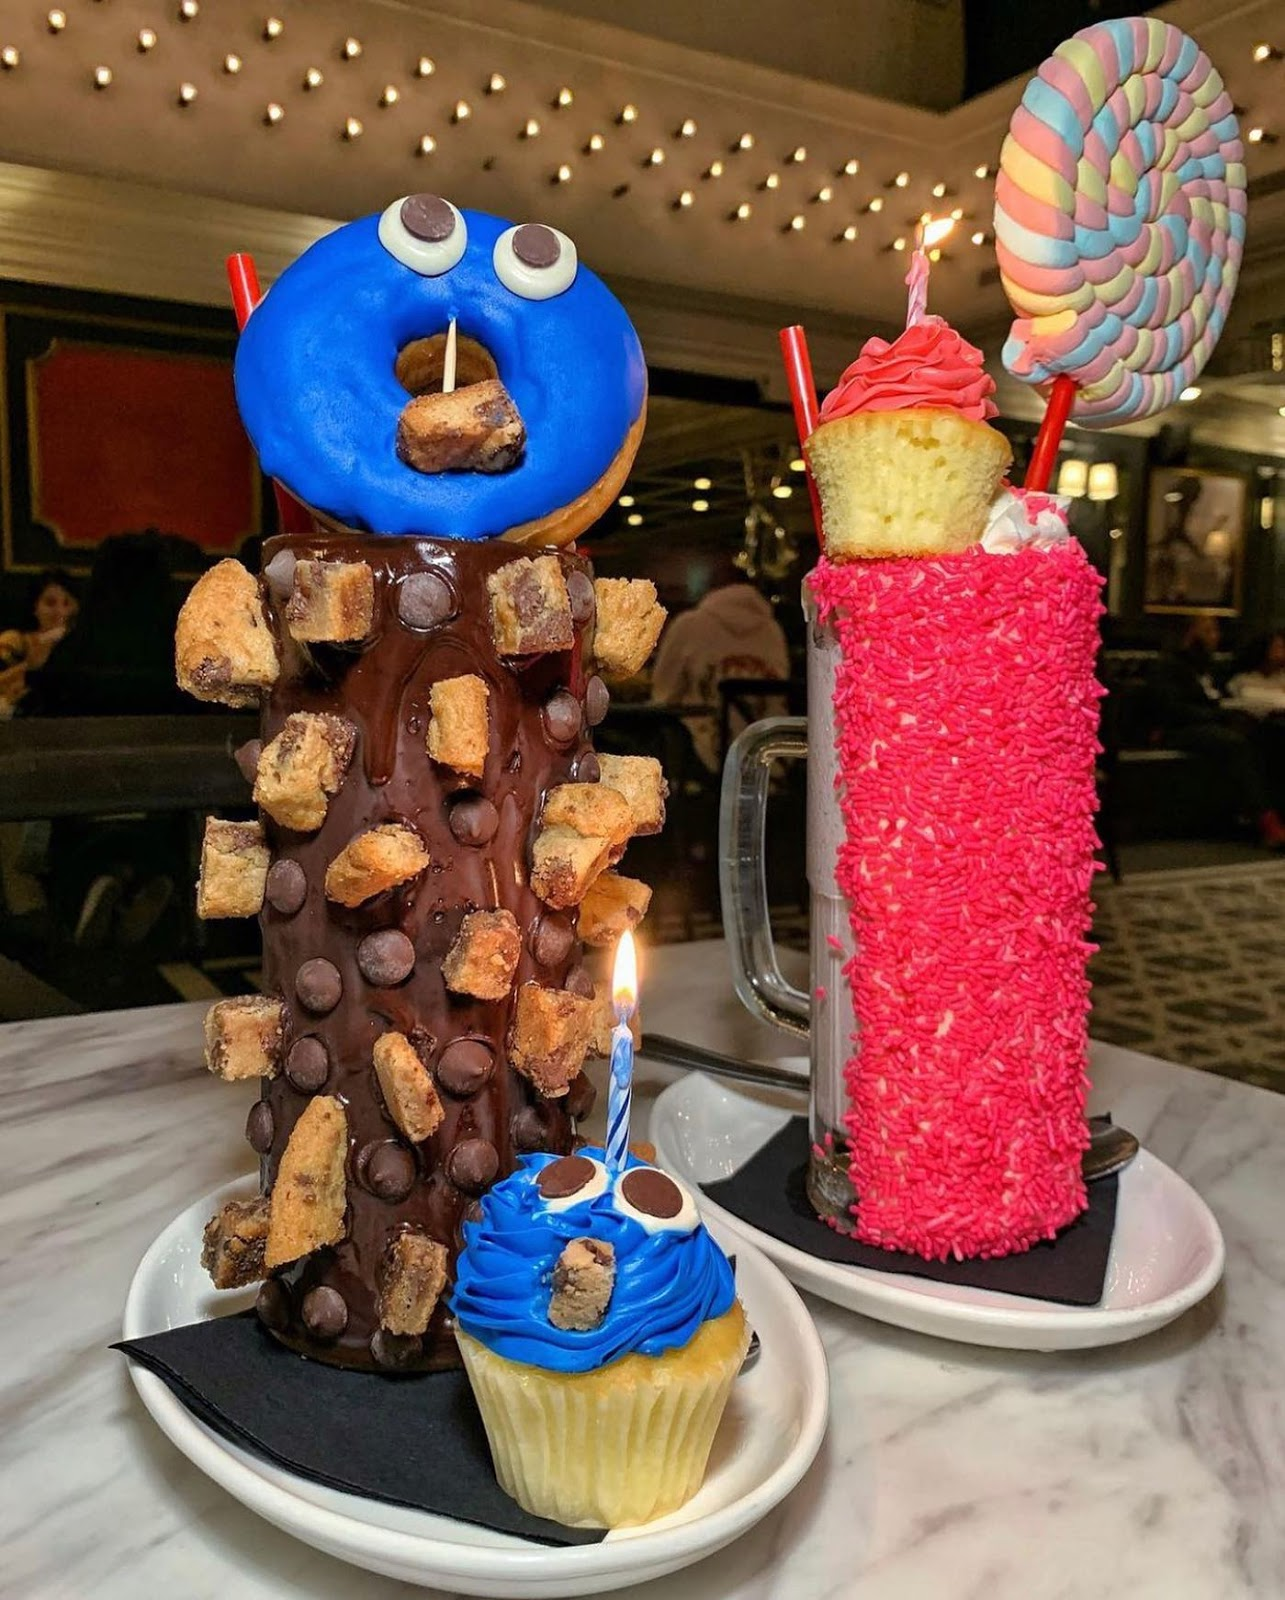 two large milkshakes sit atop a white granite table. The milkshake on the left, called the Cookie Monster Make a Wish, is tall and the glass is dipped in chocolate. It has cookie dough and chunks of cookie stuck in the chocolate on the outside. On top of the milkshake sits a circular donut with blue icing and two eyes to resemble Cookie Monster. Also on the plat is a vanilla cupcake with blue icing and two eyes. The milkshake on the right, The Princess Make a Wish, has a glass dipped in bright pink sprinkles. On top, there are two straws poking out next to an oversized pink lollipop and a vanilla cupcake with pink frosting.